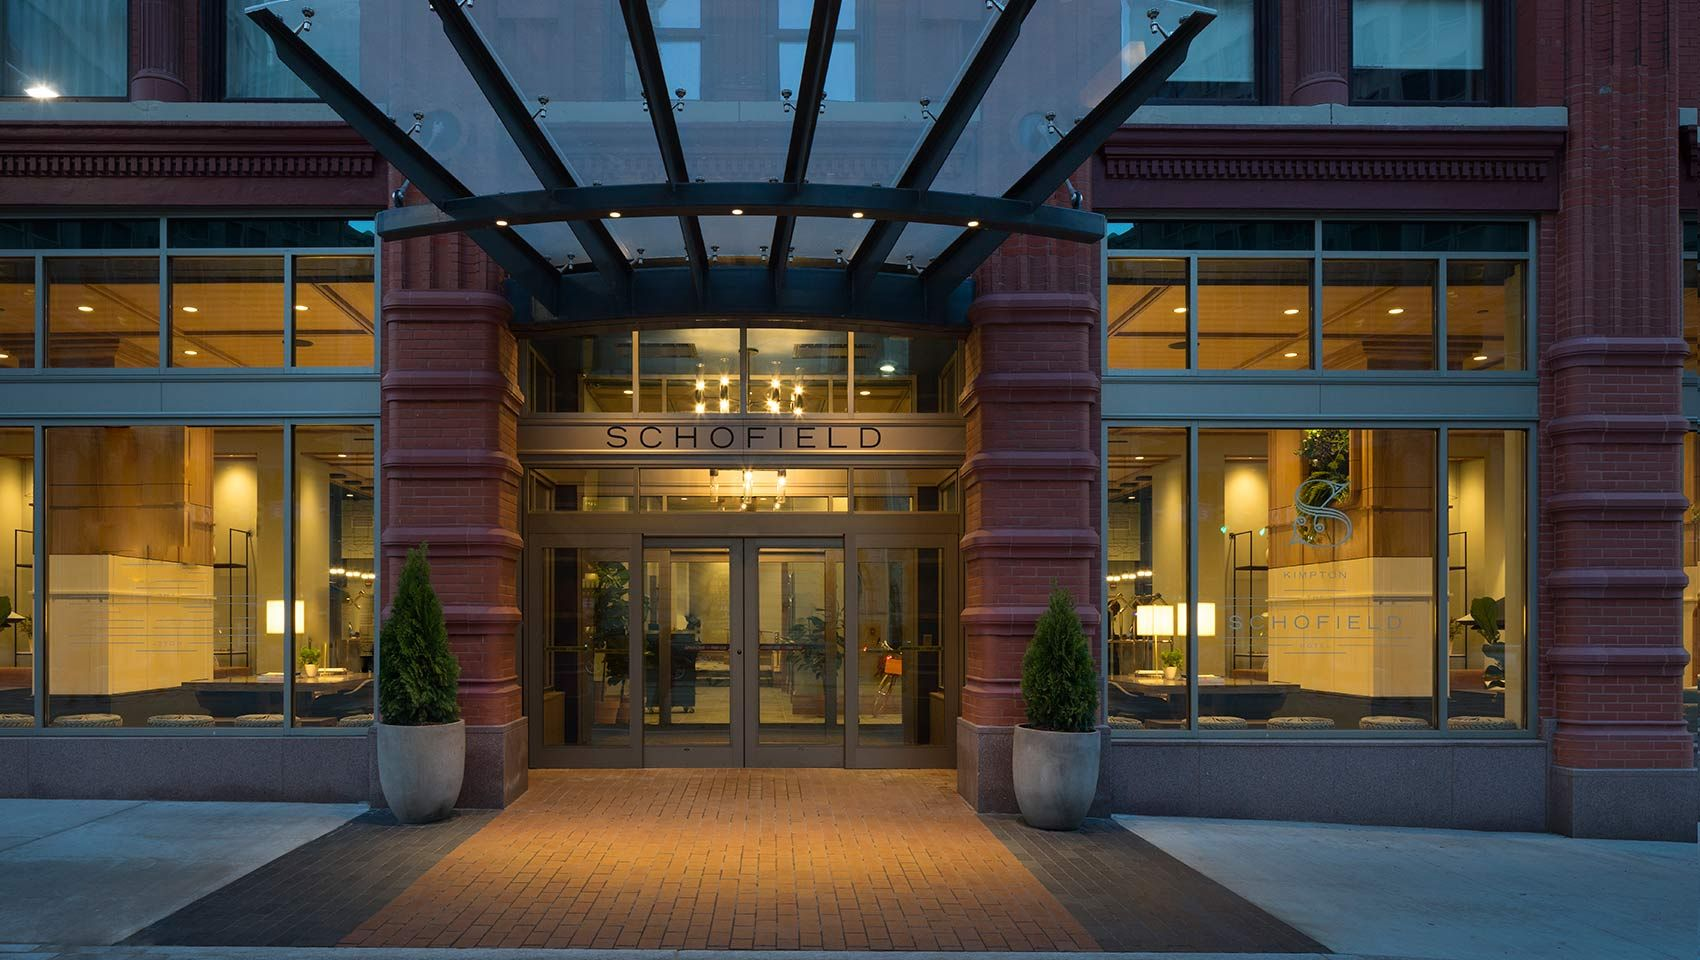 Downtown Cleveland Hotel Kimpton Schofield Hotel Cleveland Hotels Downtown Cleveland Hotels Ohio Hotels